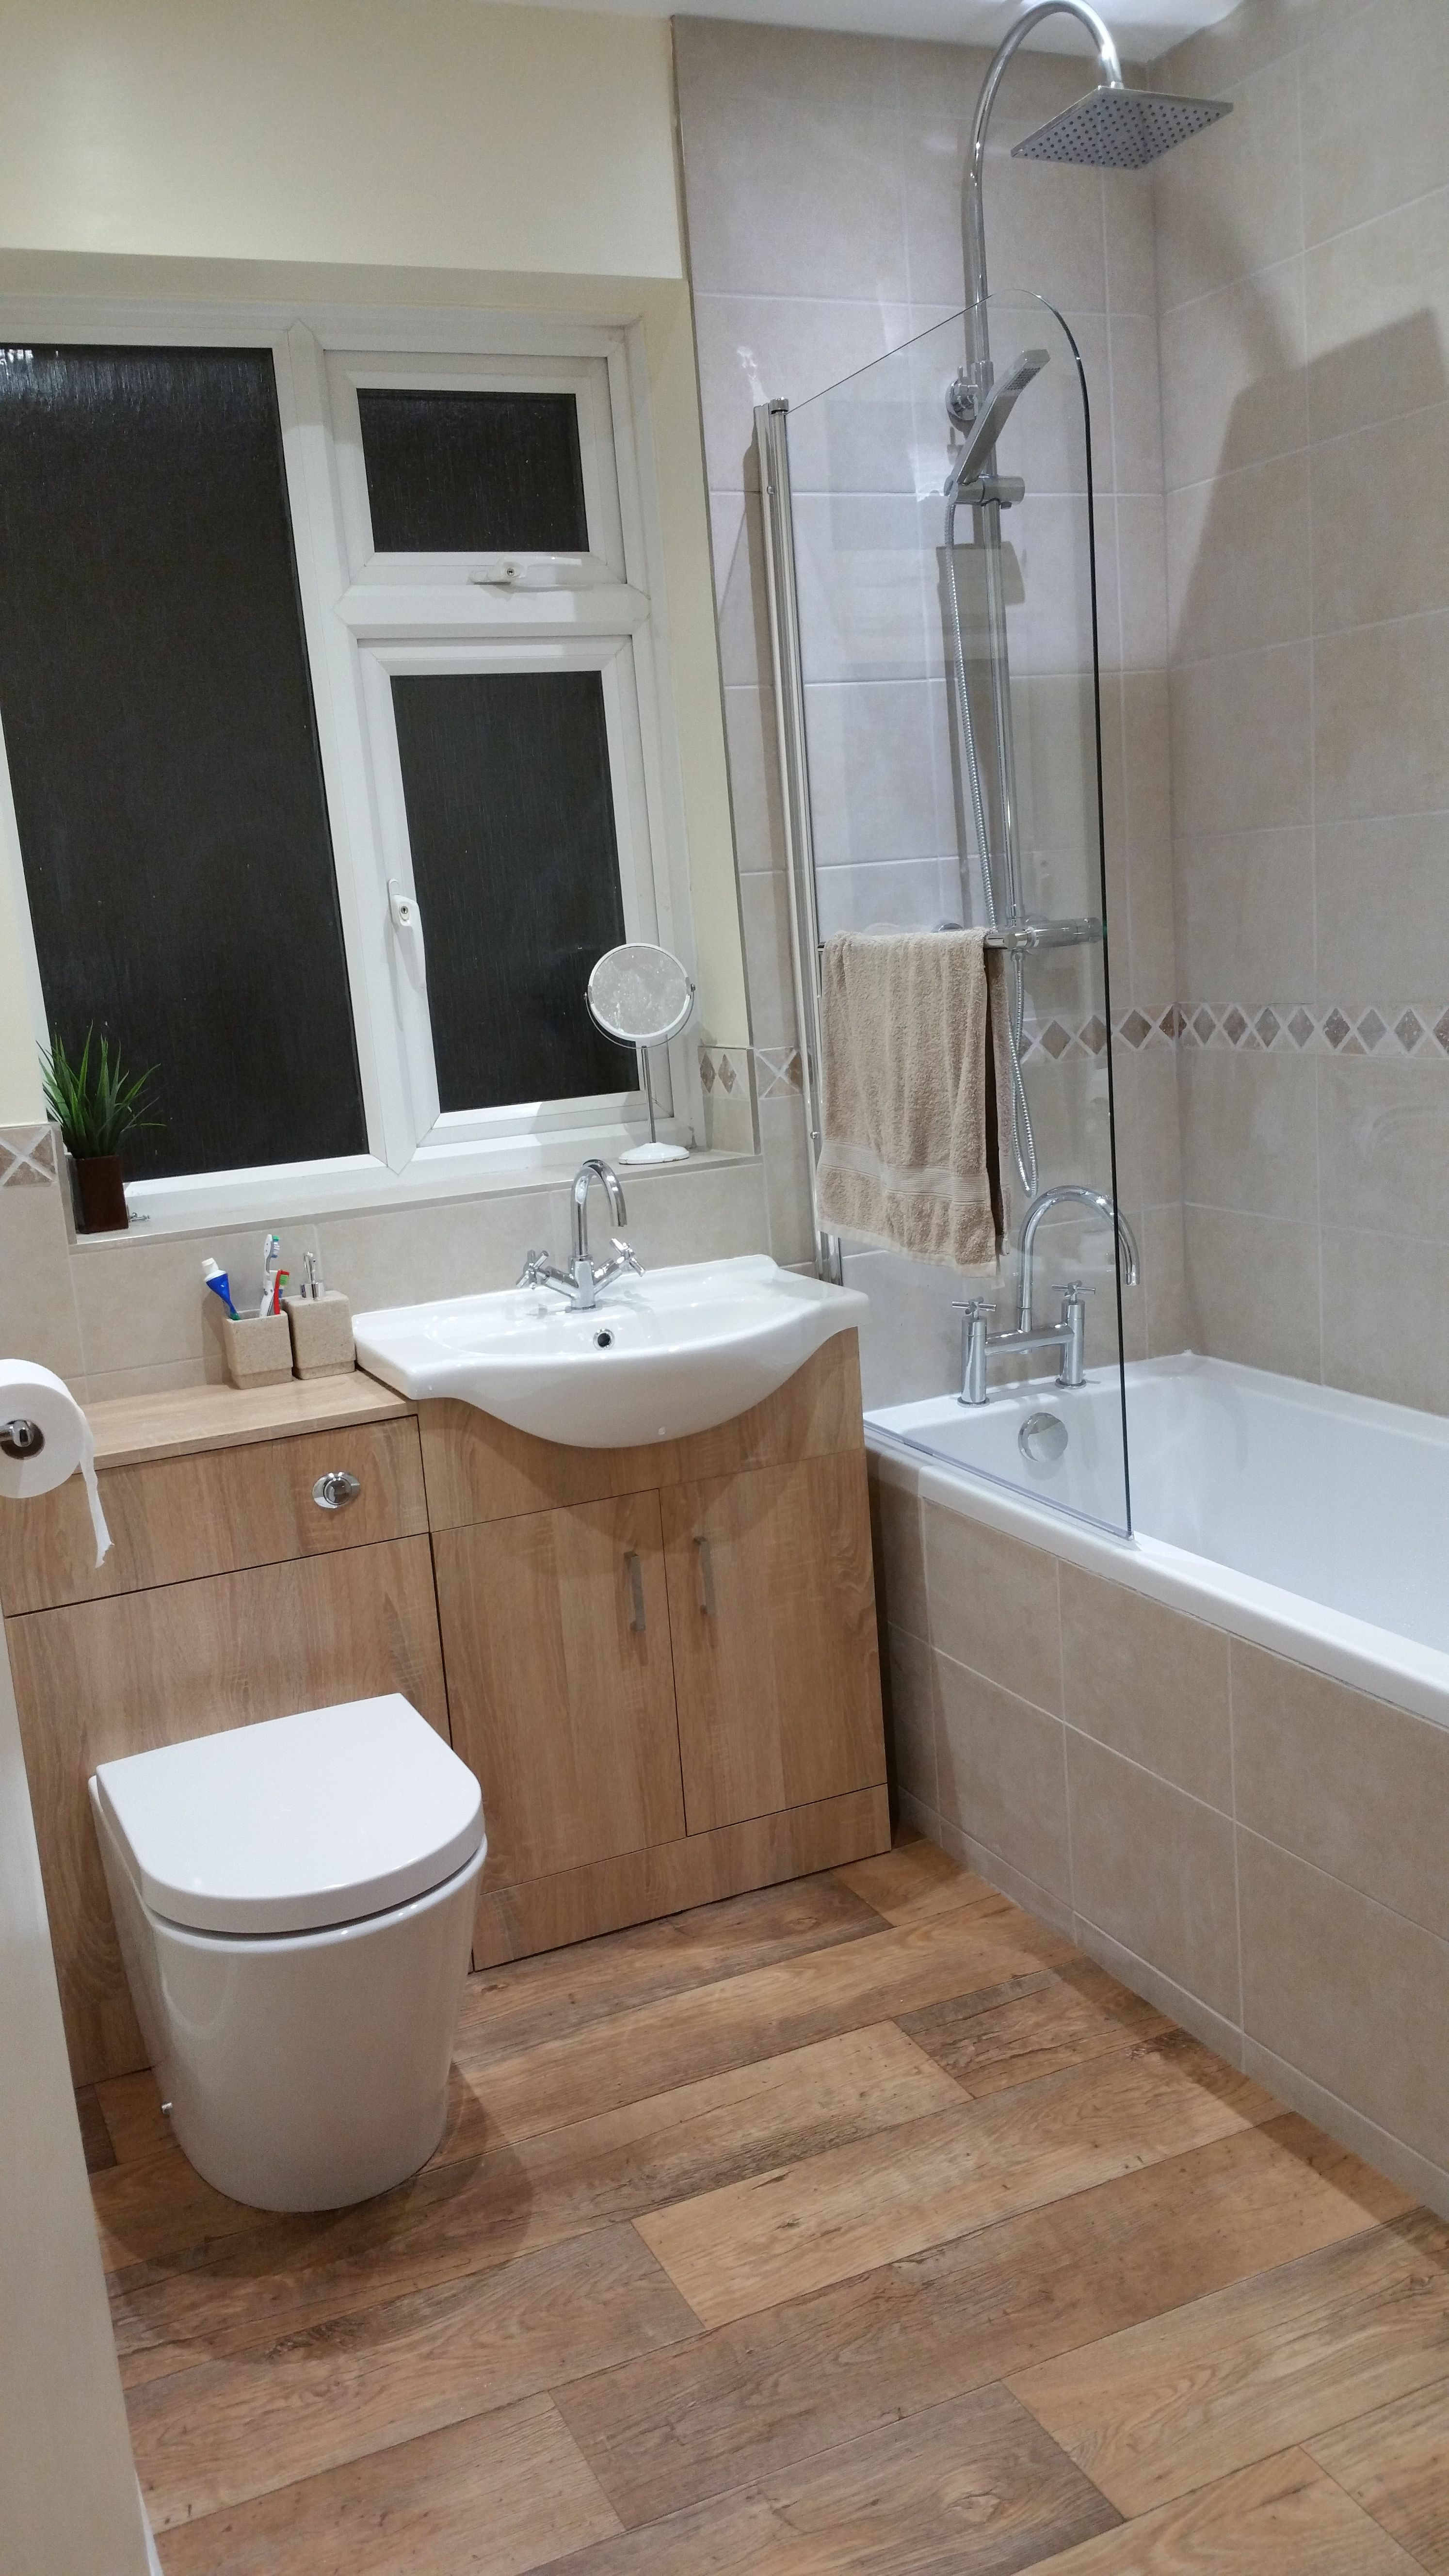 The back to wall toilet unit and oak vanity unit both come from the